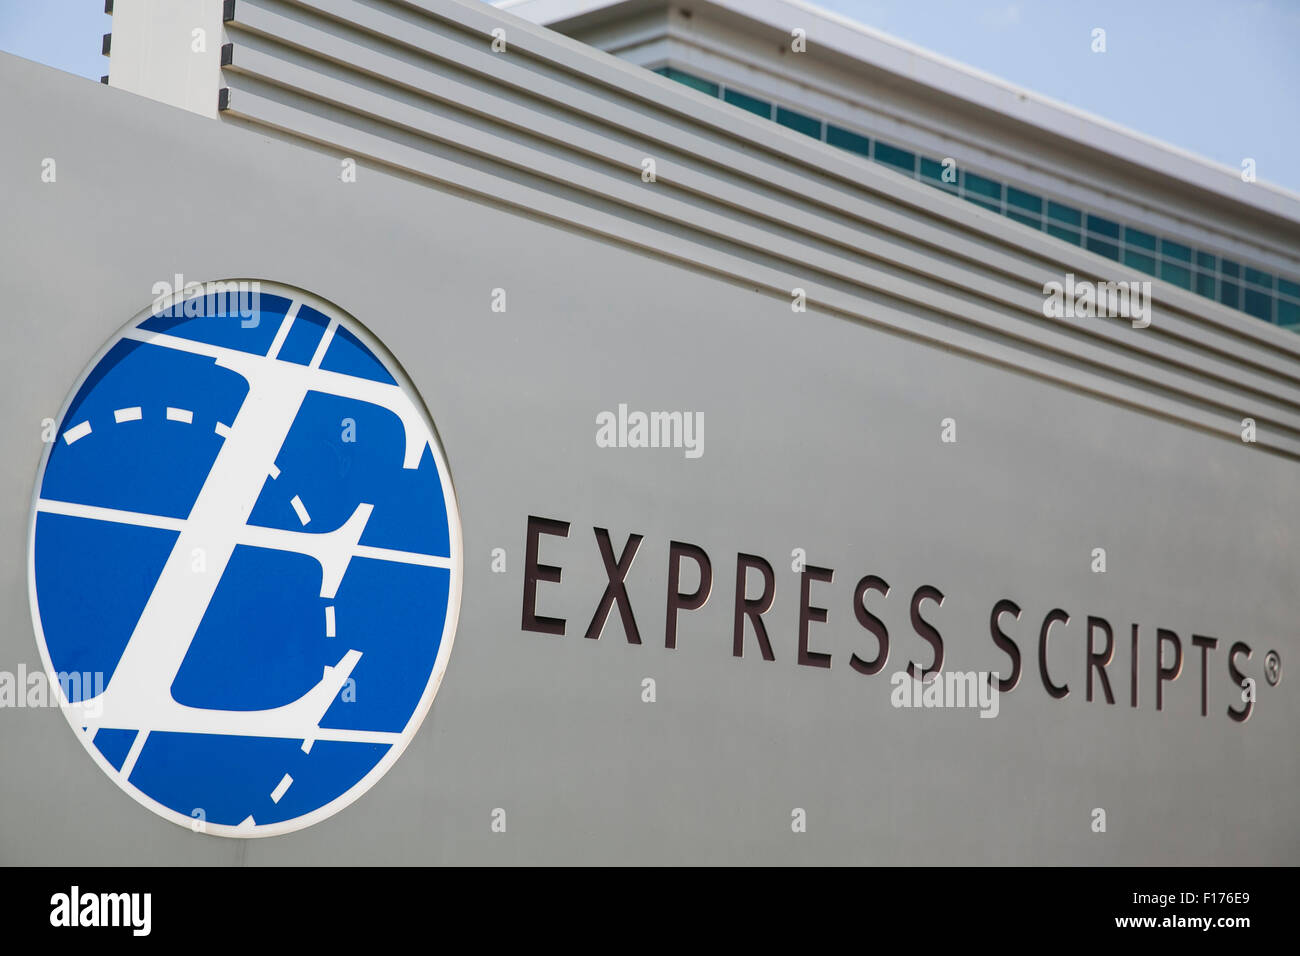 A logo sign outside of the headquarters of Express Scripts, in St. Louis, Missouri on August 16, 2015. - Stock Image